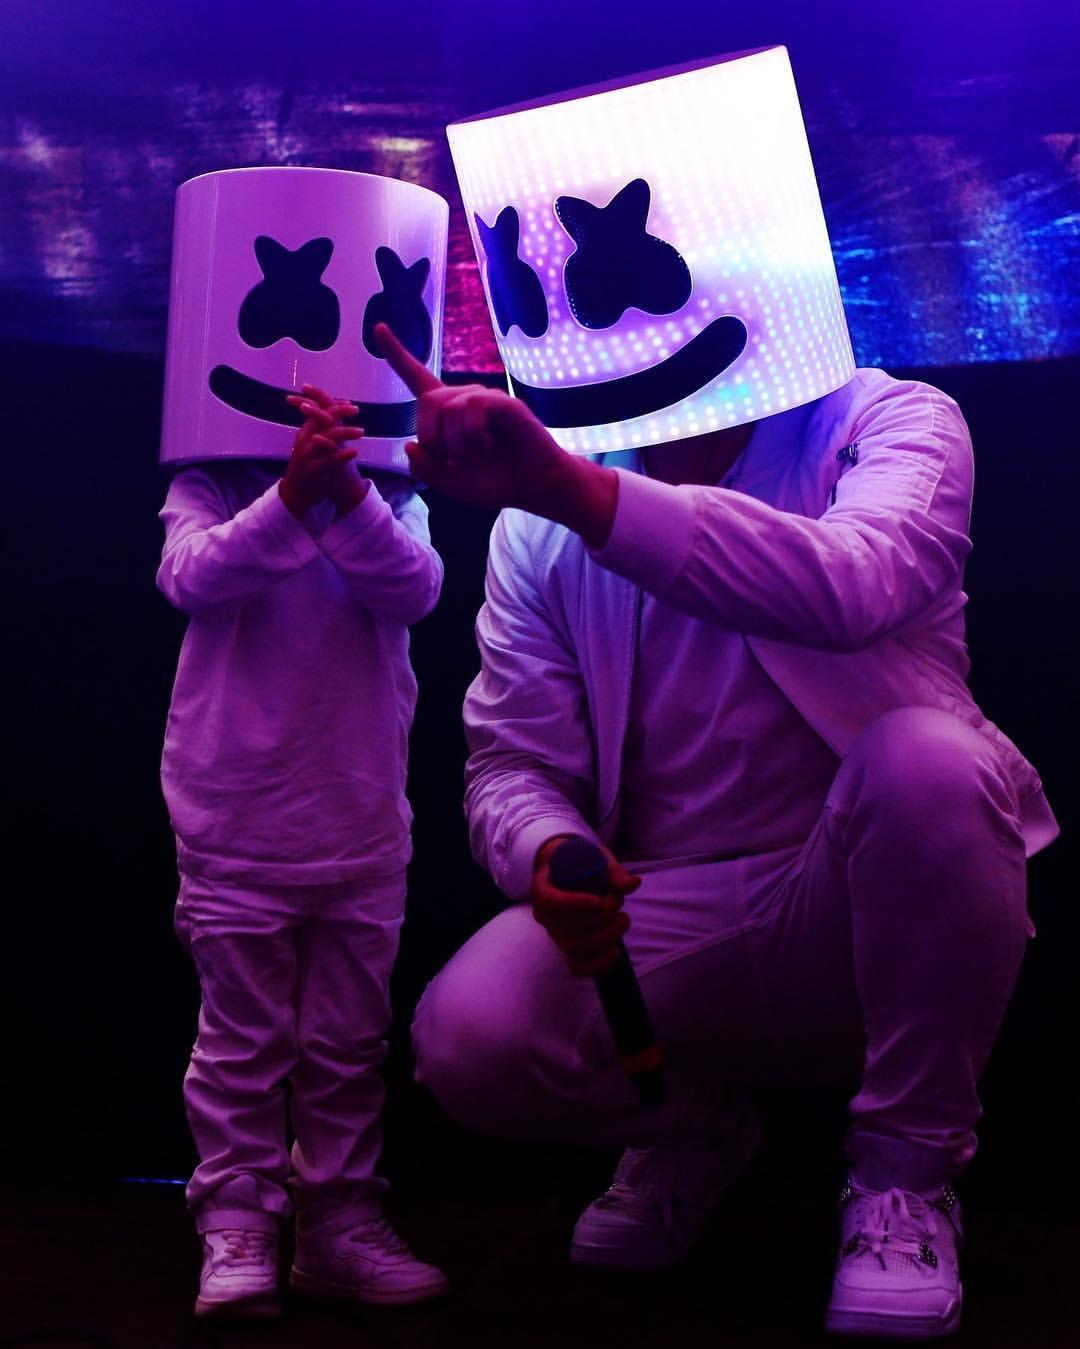 1080x1349 DJ Marshmello Wallpaper HD for Android - APK Download